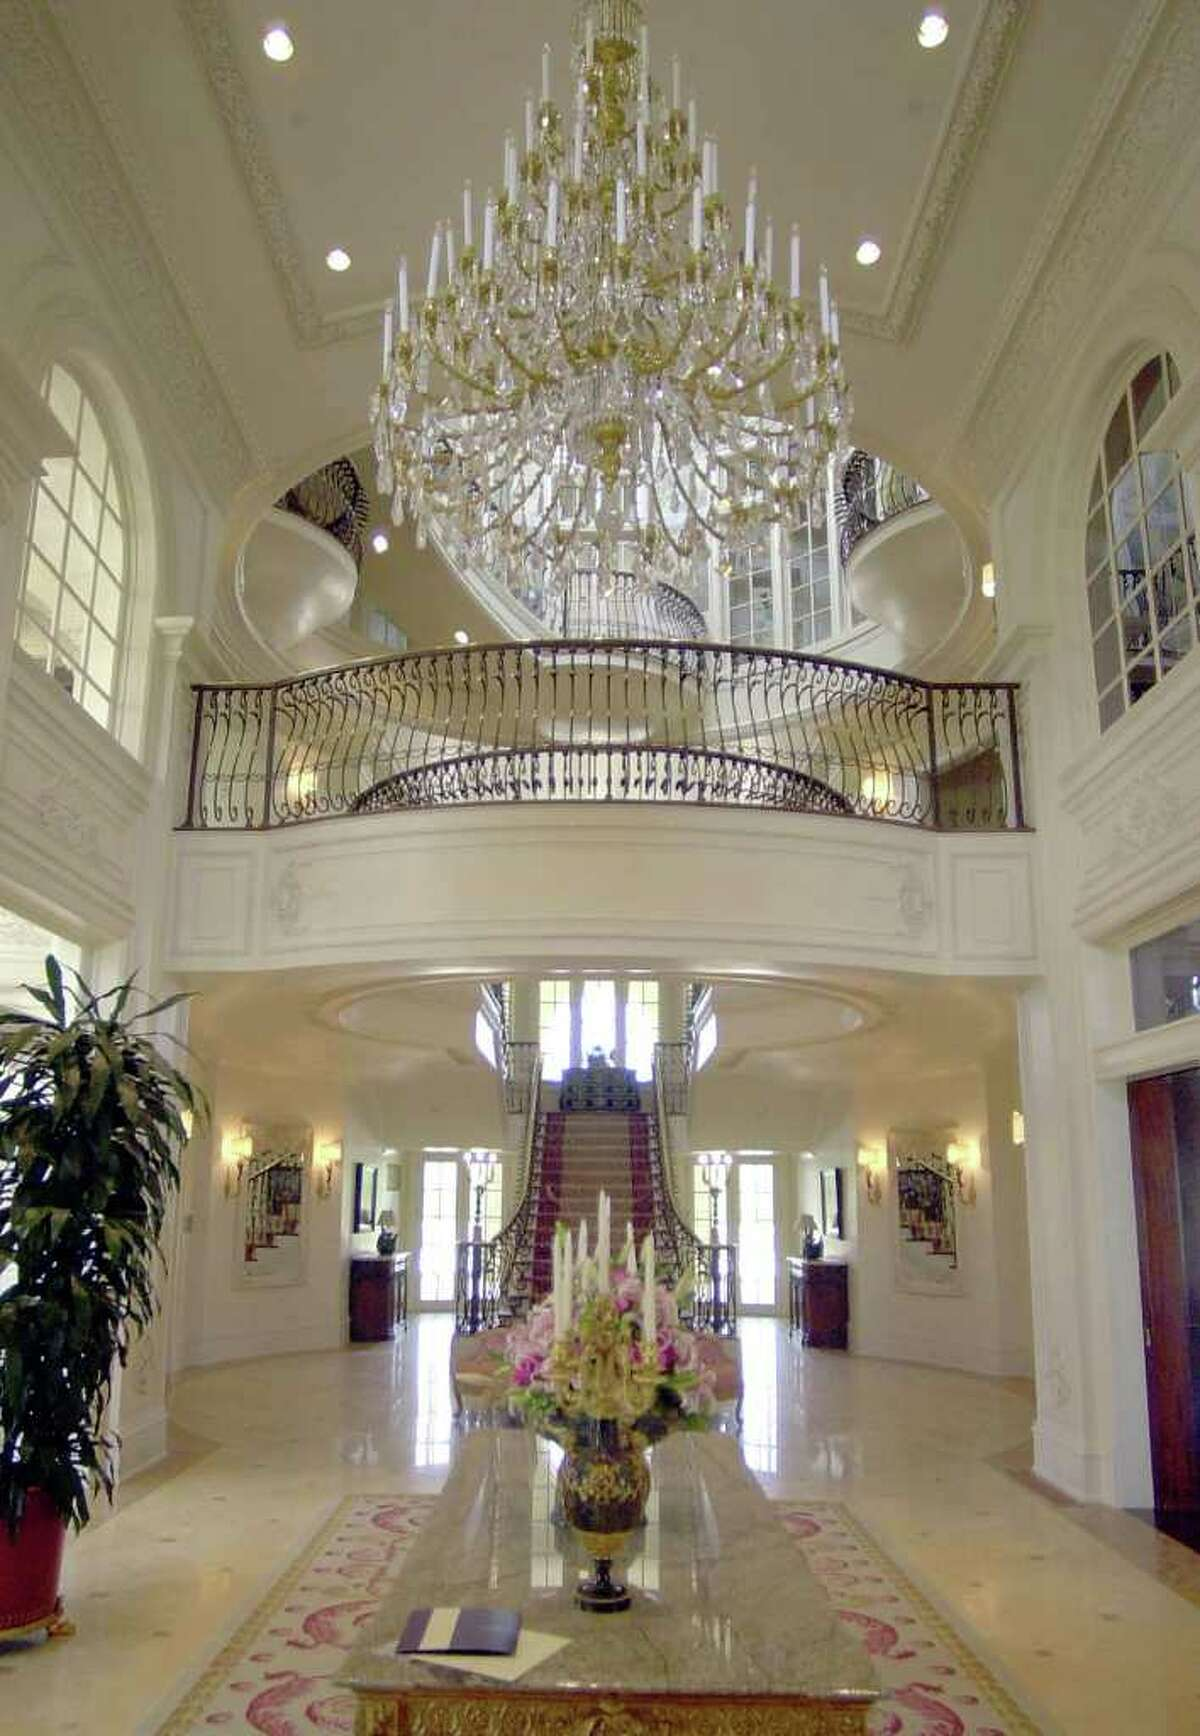 In this April 30, 2003 file photo, the main entry of the Champ d'Or home is shown in Hickory Creek, Texas. The 48,000-square foot mansion that cost $46 million to build and was modeled after a French landmark is going on the auction block later this month, where it could be sold for around $10 million. (AP Photo/LM Otero, File)